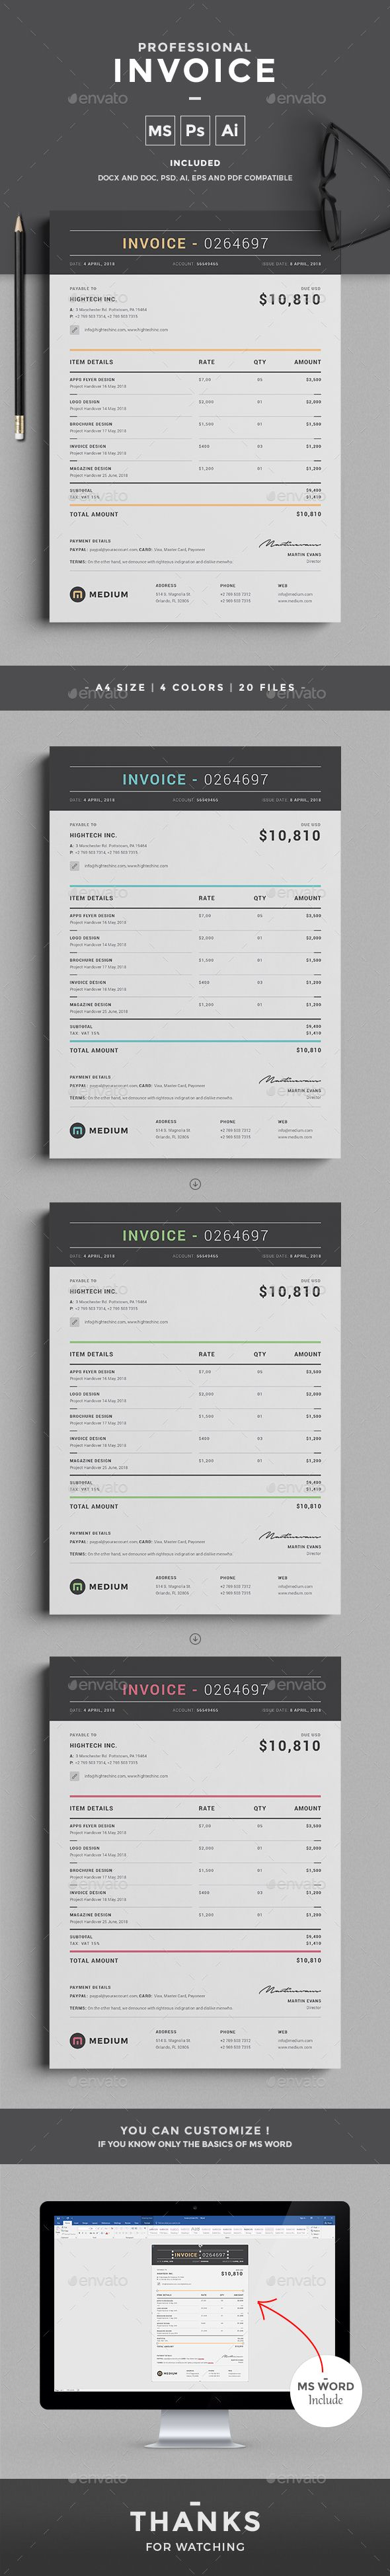 Invoice Proposals u0026 Invoices Stationery 38